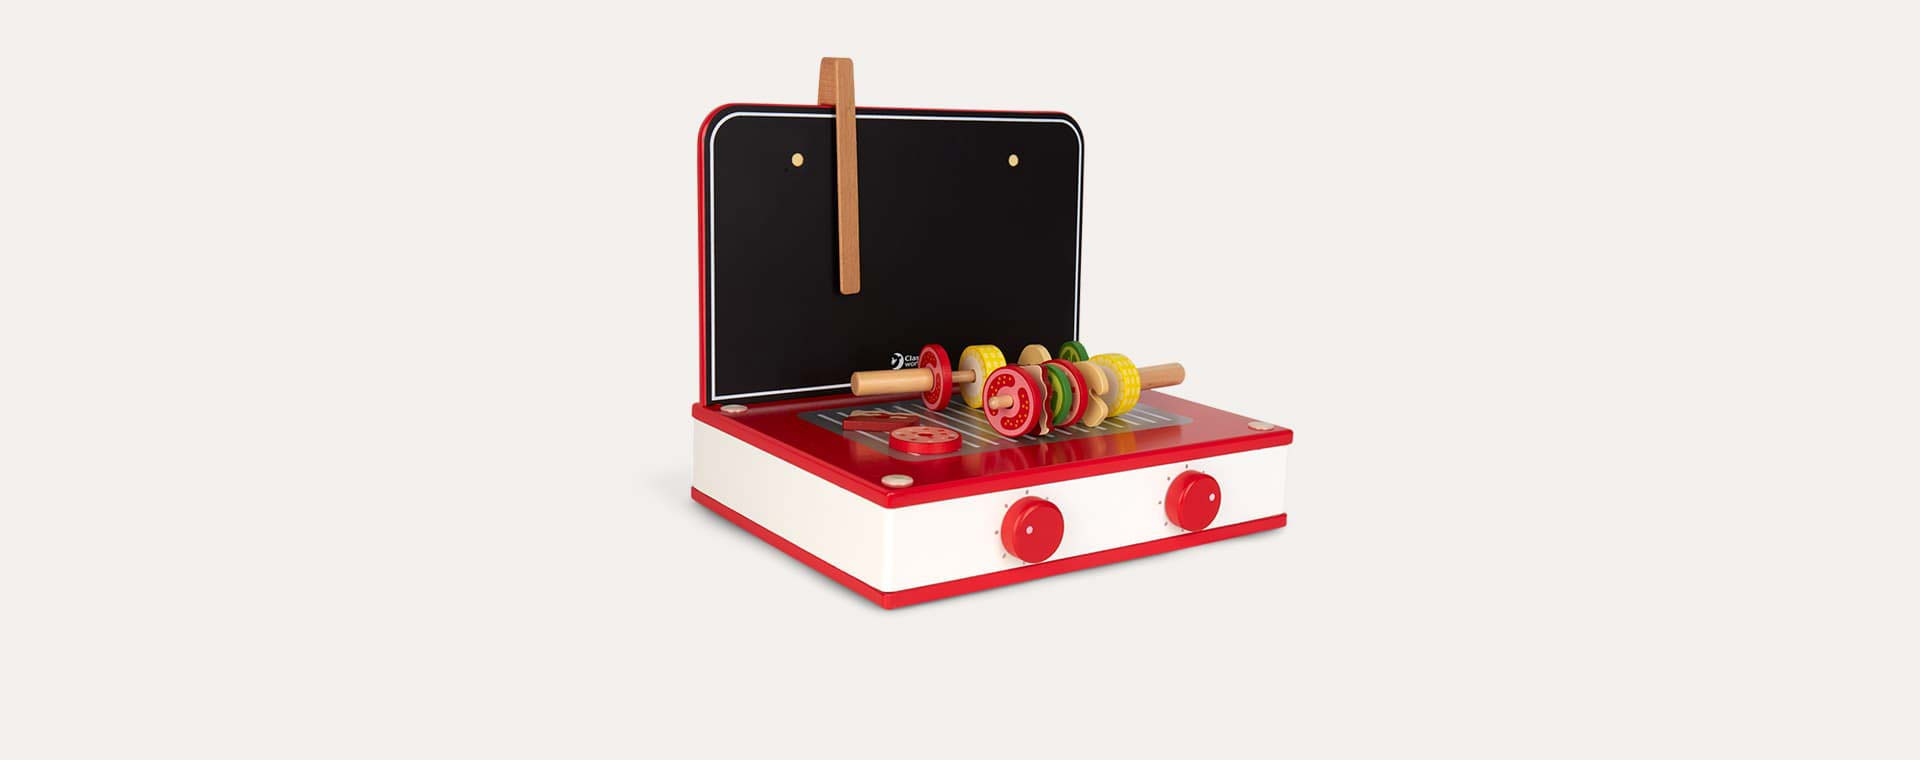 Red Classic World Retro Tabletop Kitchen